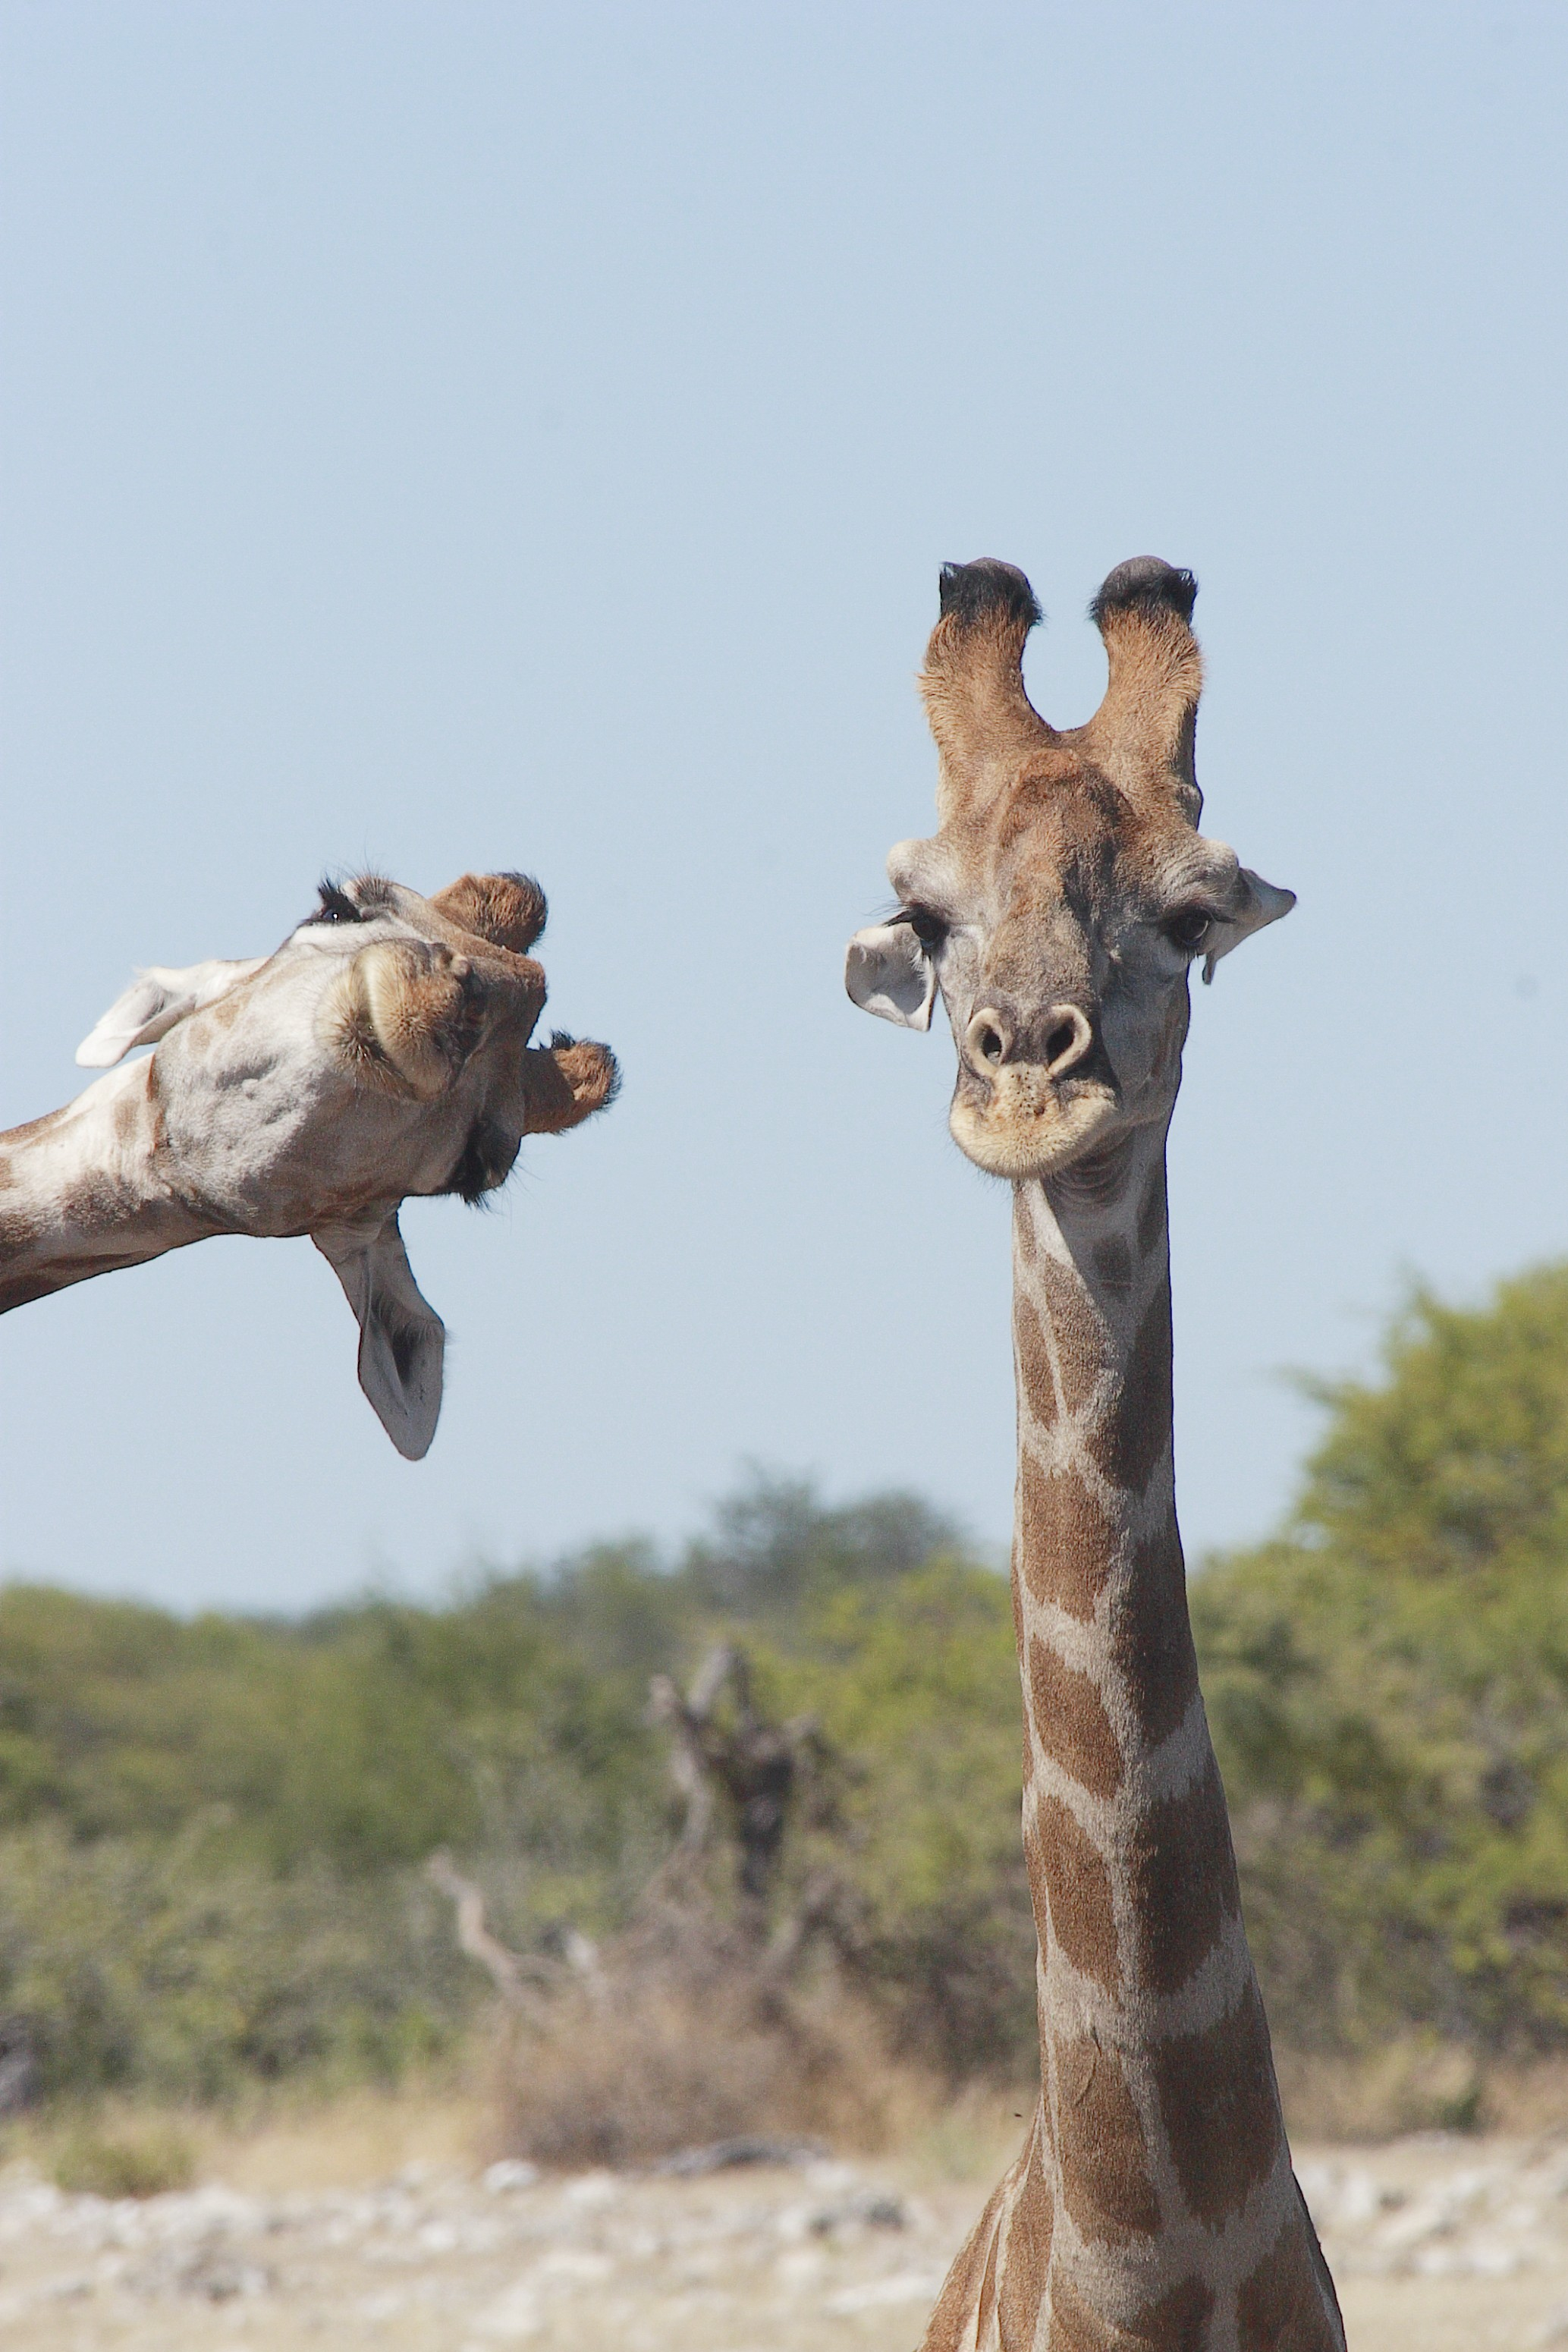 Two giraffe heads backed by sky, one appears normally in the frame and the other is poking out from the side, photobombing